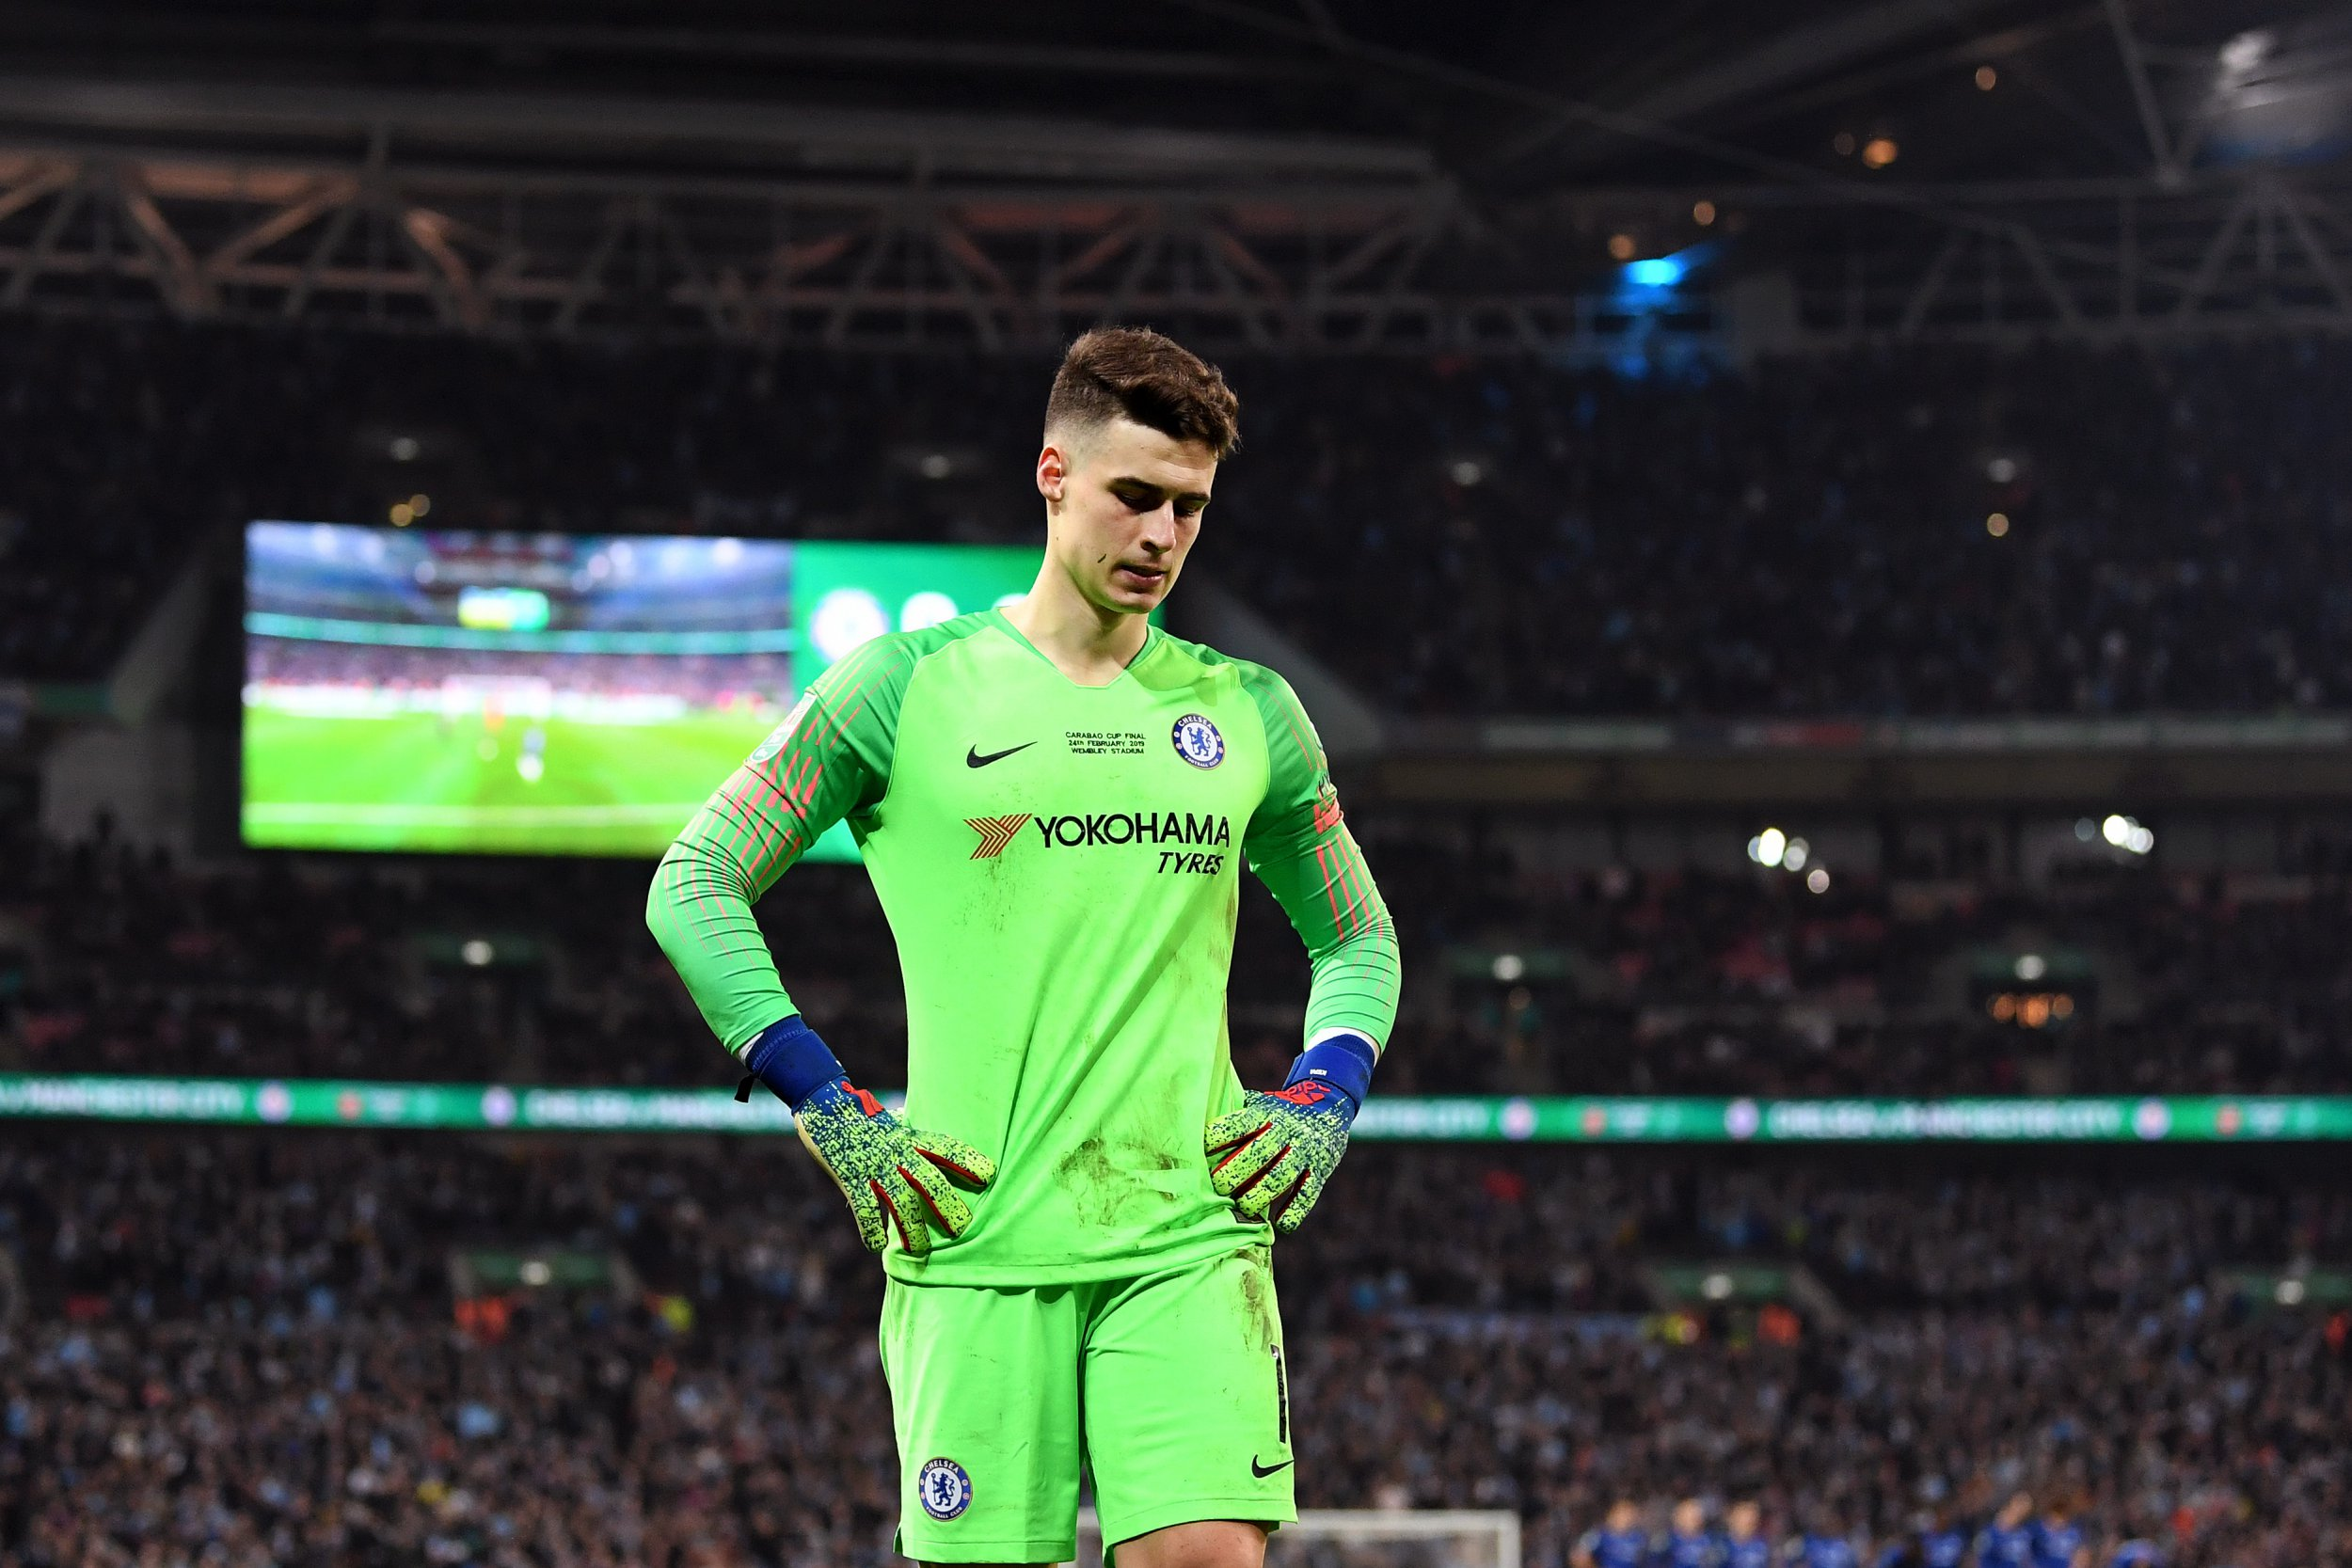 Real Madrid are preparing to swoop for Chelsea's Kepa Arrizabalaga after giving up on David de Gea